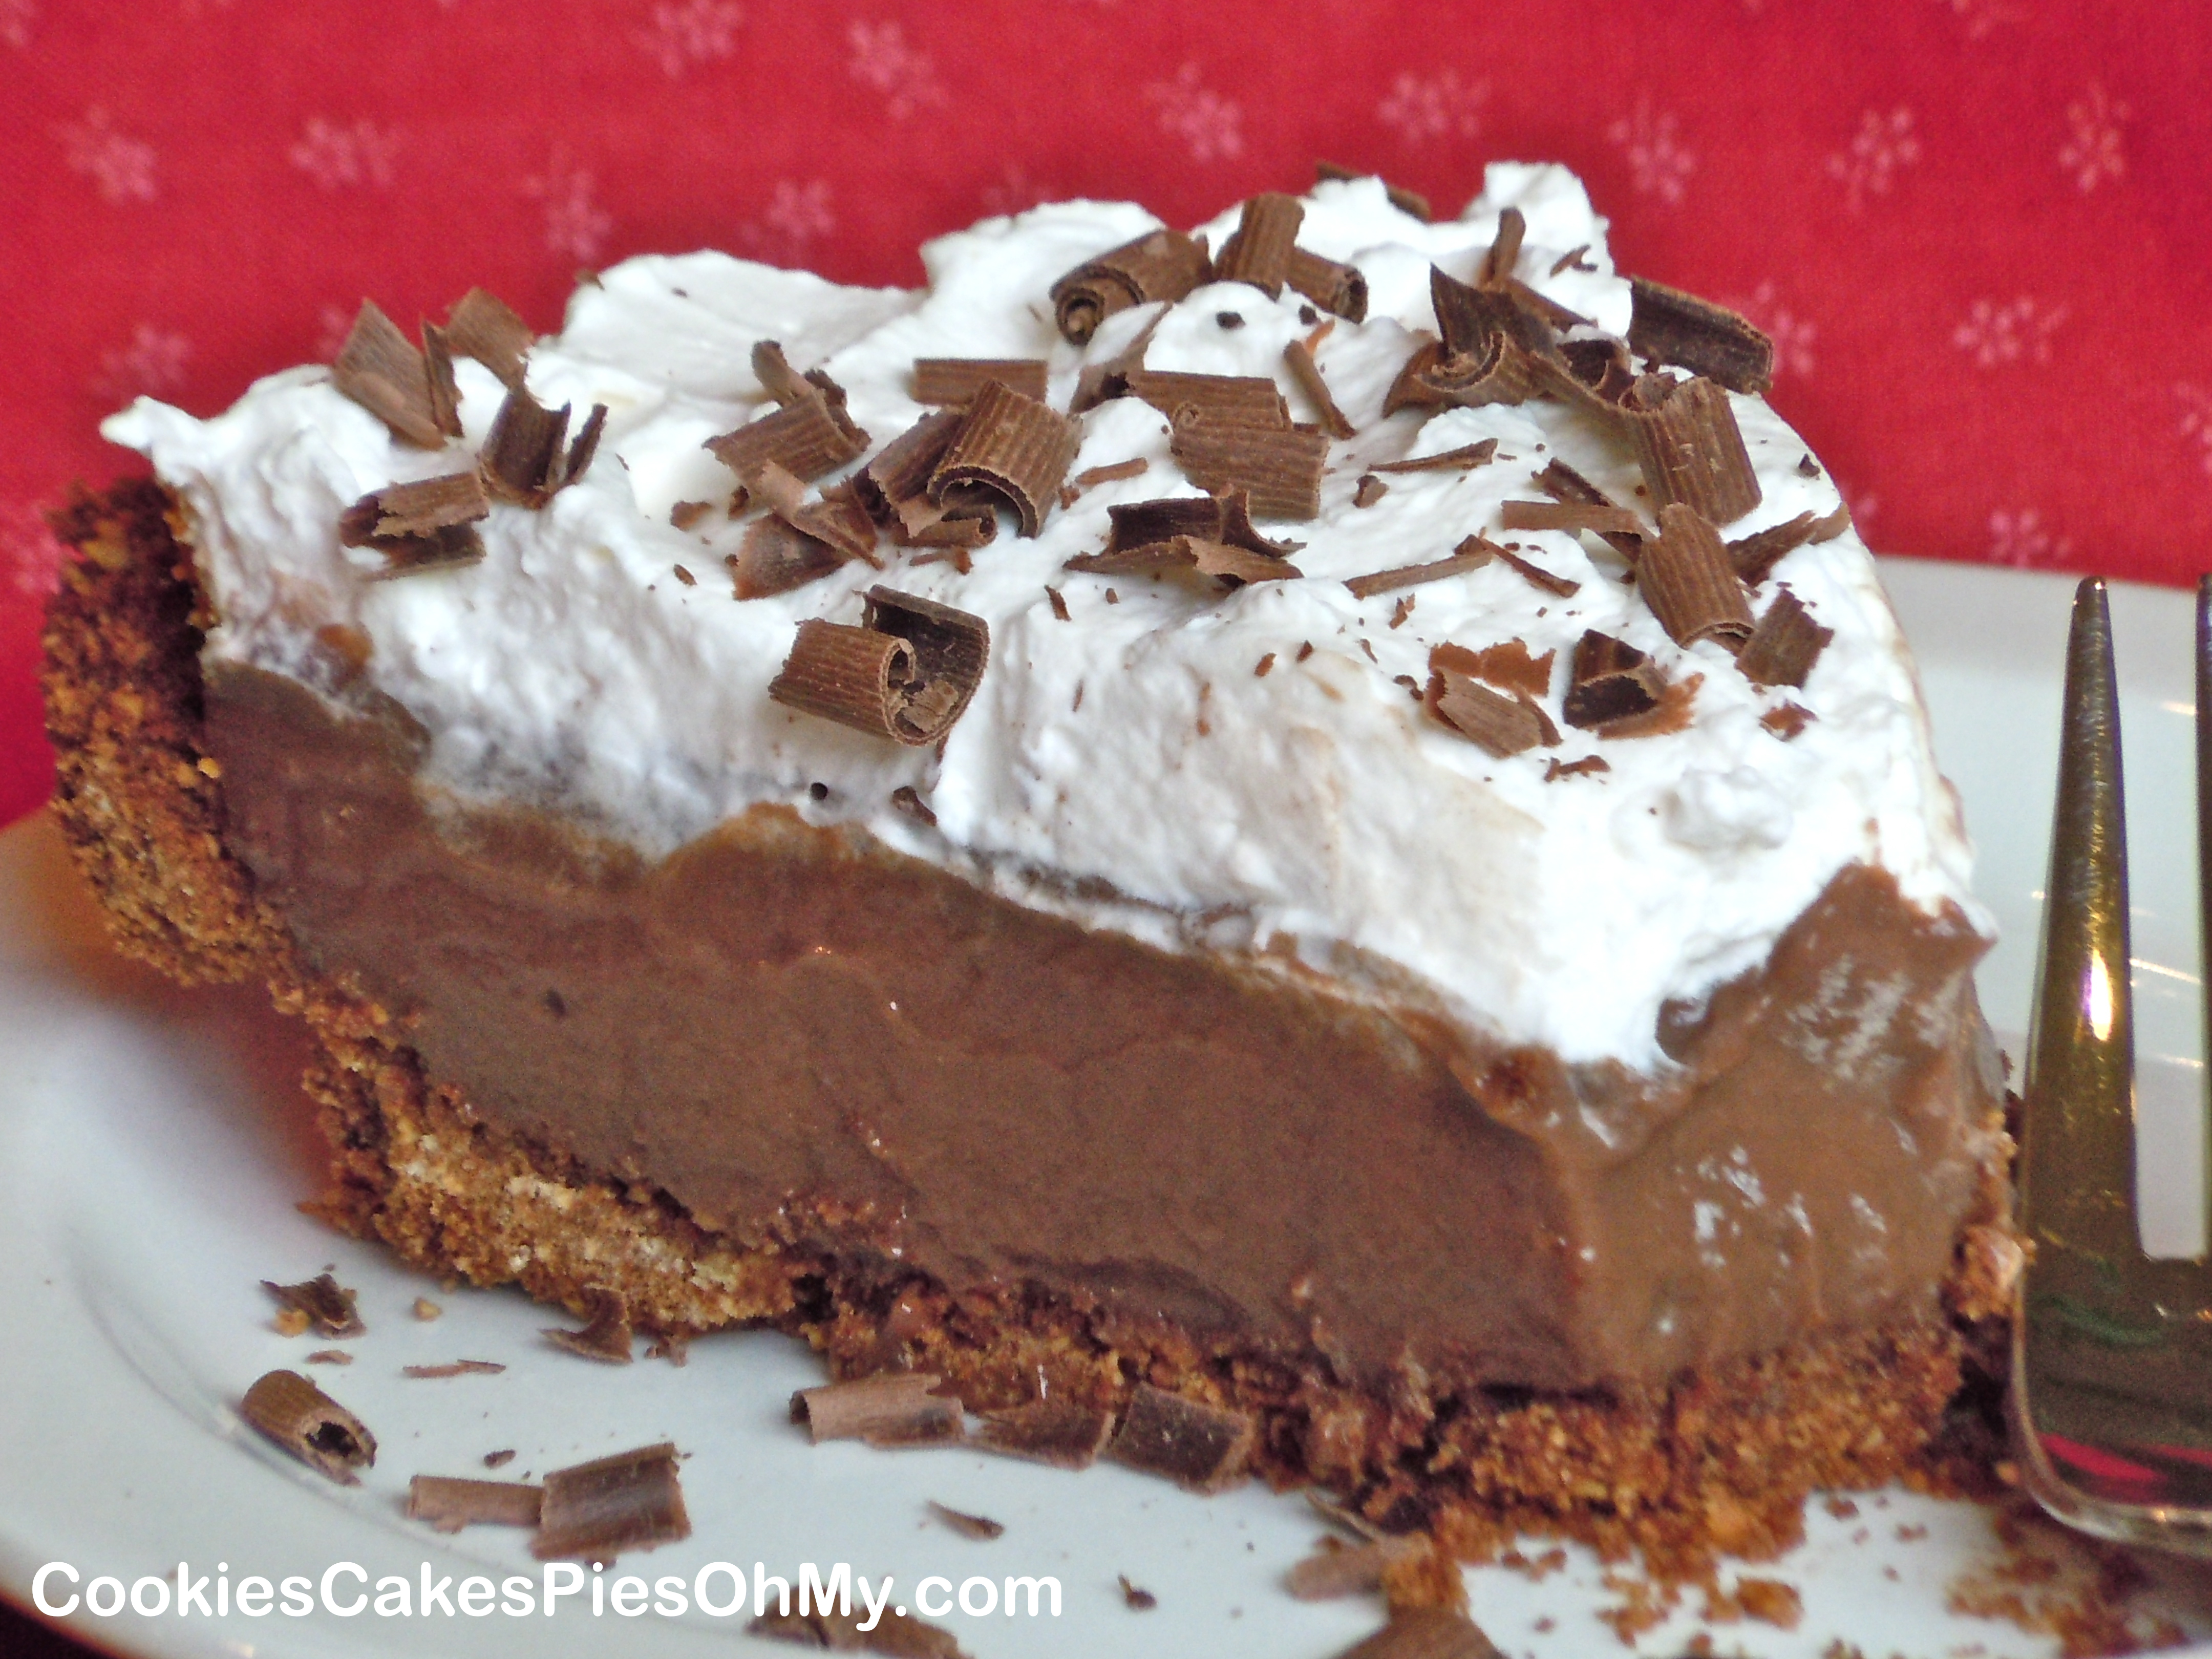 Dark Chocolate Cream Pie | CookiesCakesPiesOhMy